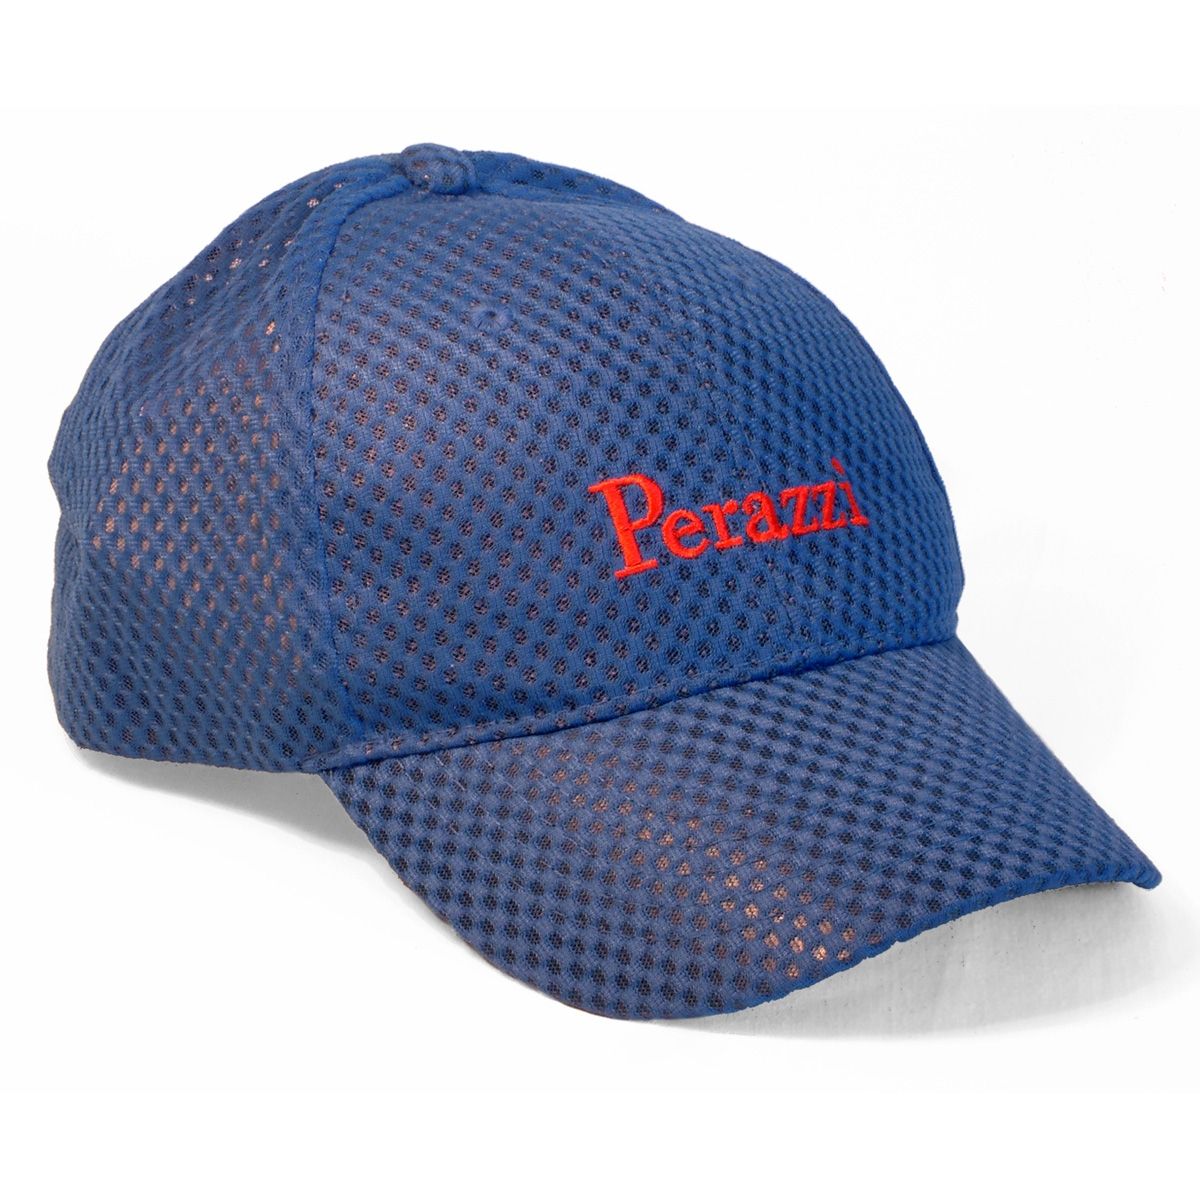 Swell Perazzi Mesh Style Peak Cap Royal Blue Royal Blue Pabps2019 Chair Design Images Pabps2019Com